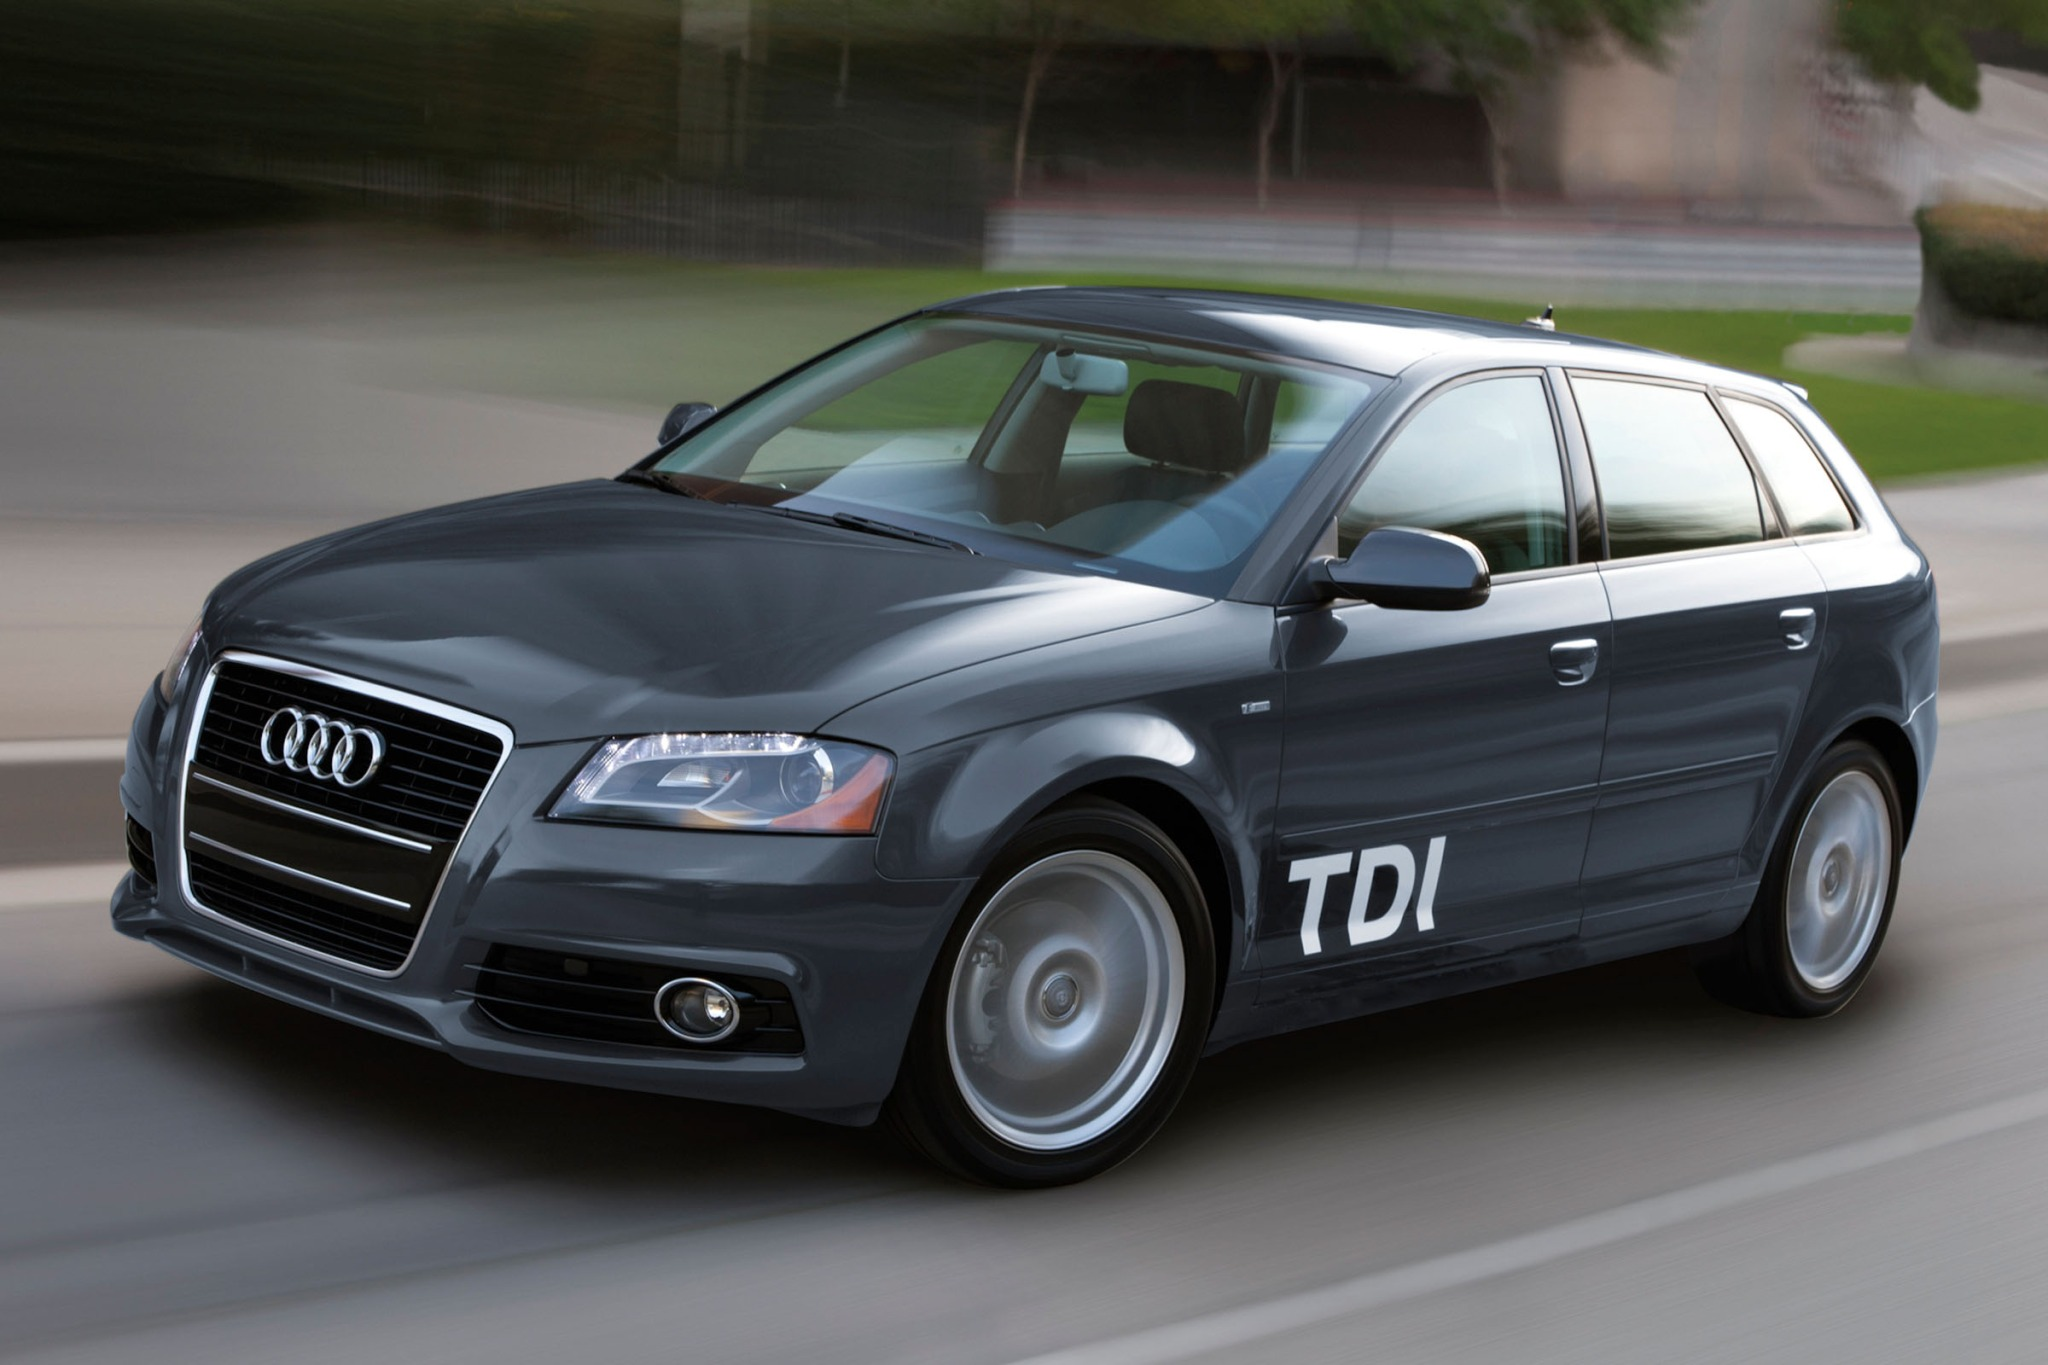 Audi A Information And Photos ZombieDrive - Audi a3 wagon